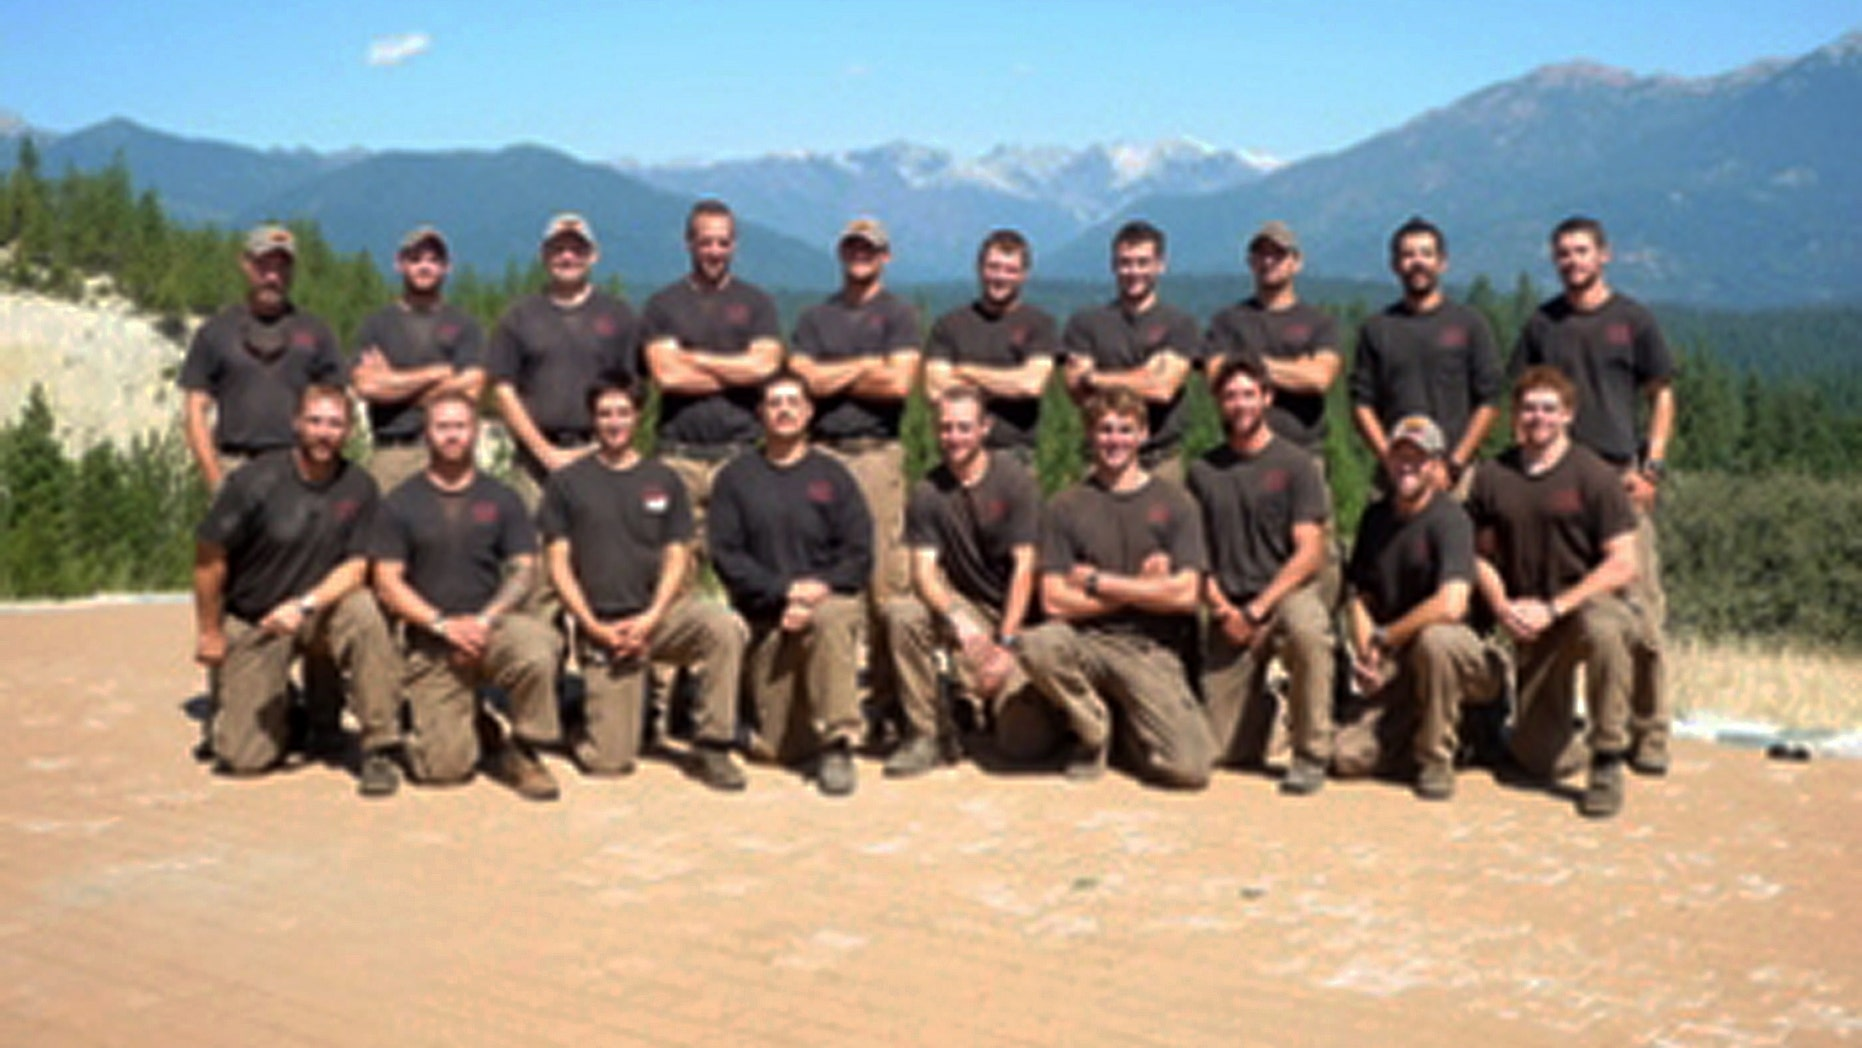 Unidentified members of the Granite Mountain Interagency Hotshot Crew from Prescott, Ariz., pose together in this undated photo provided by the City of Prescott. (AP)